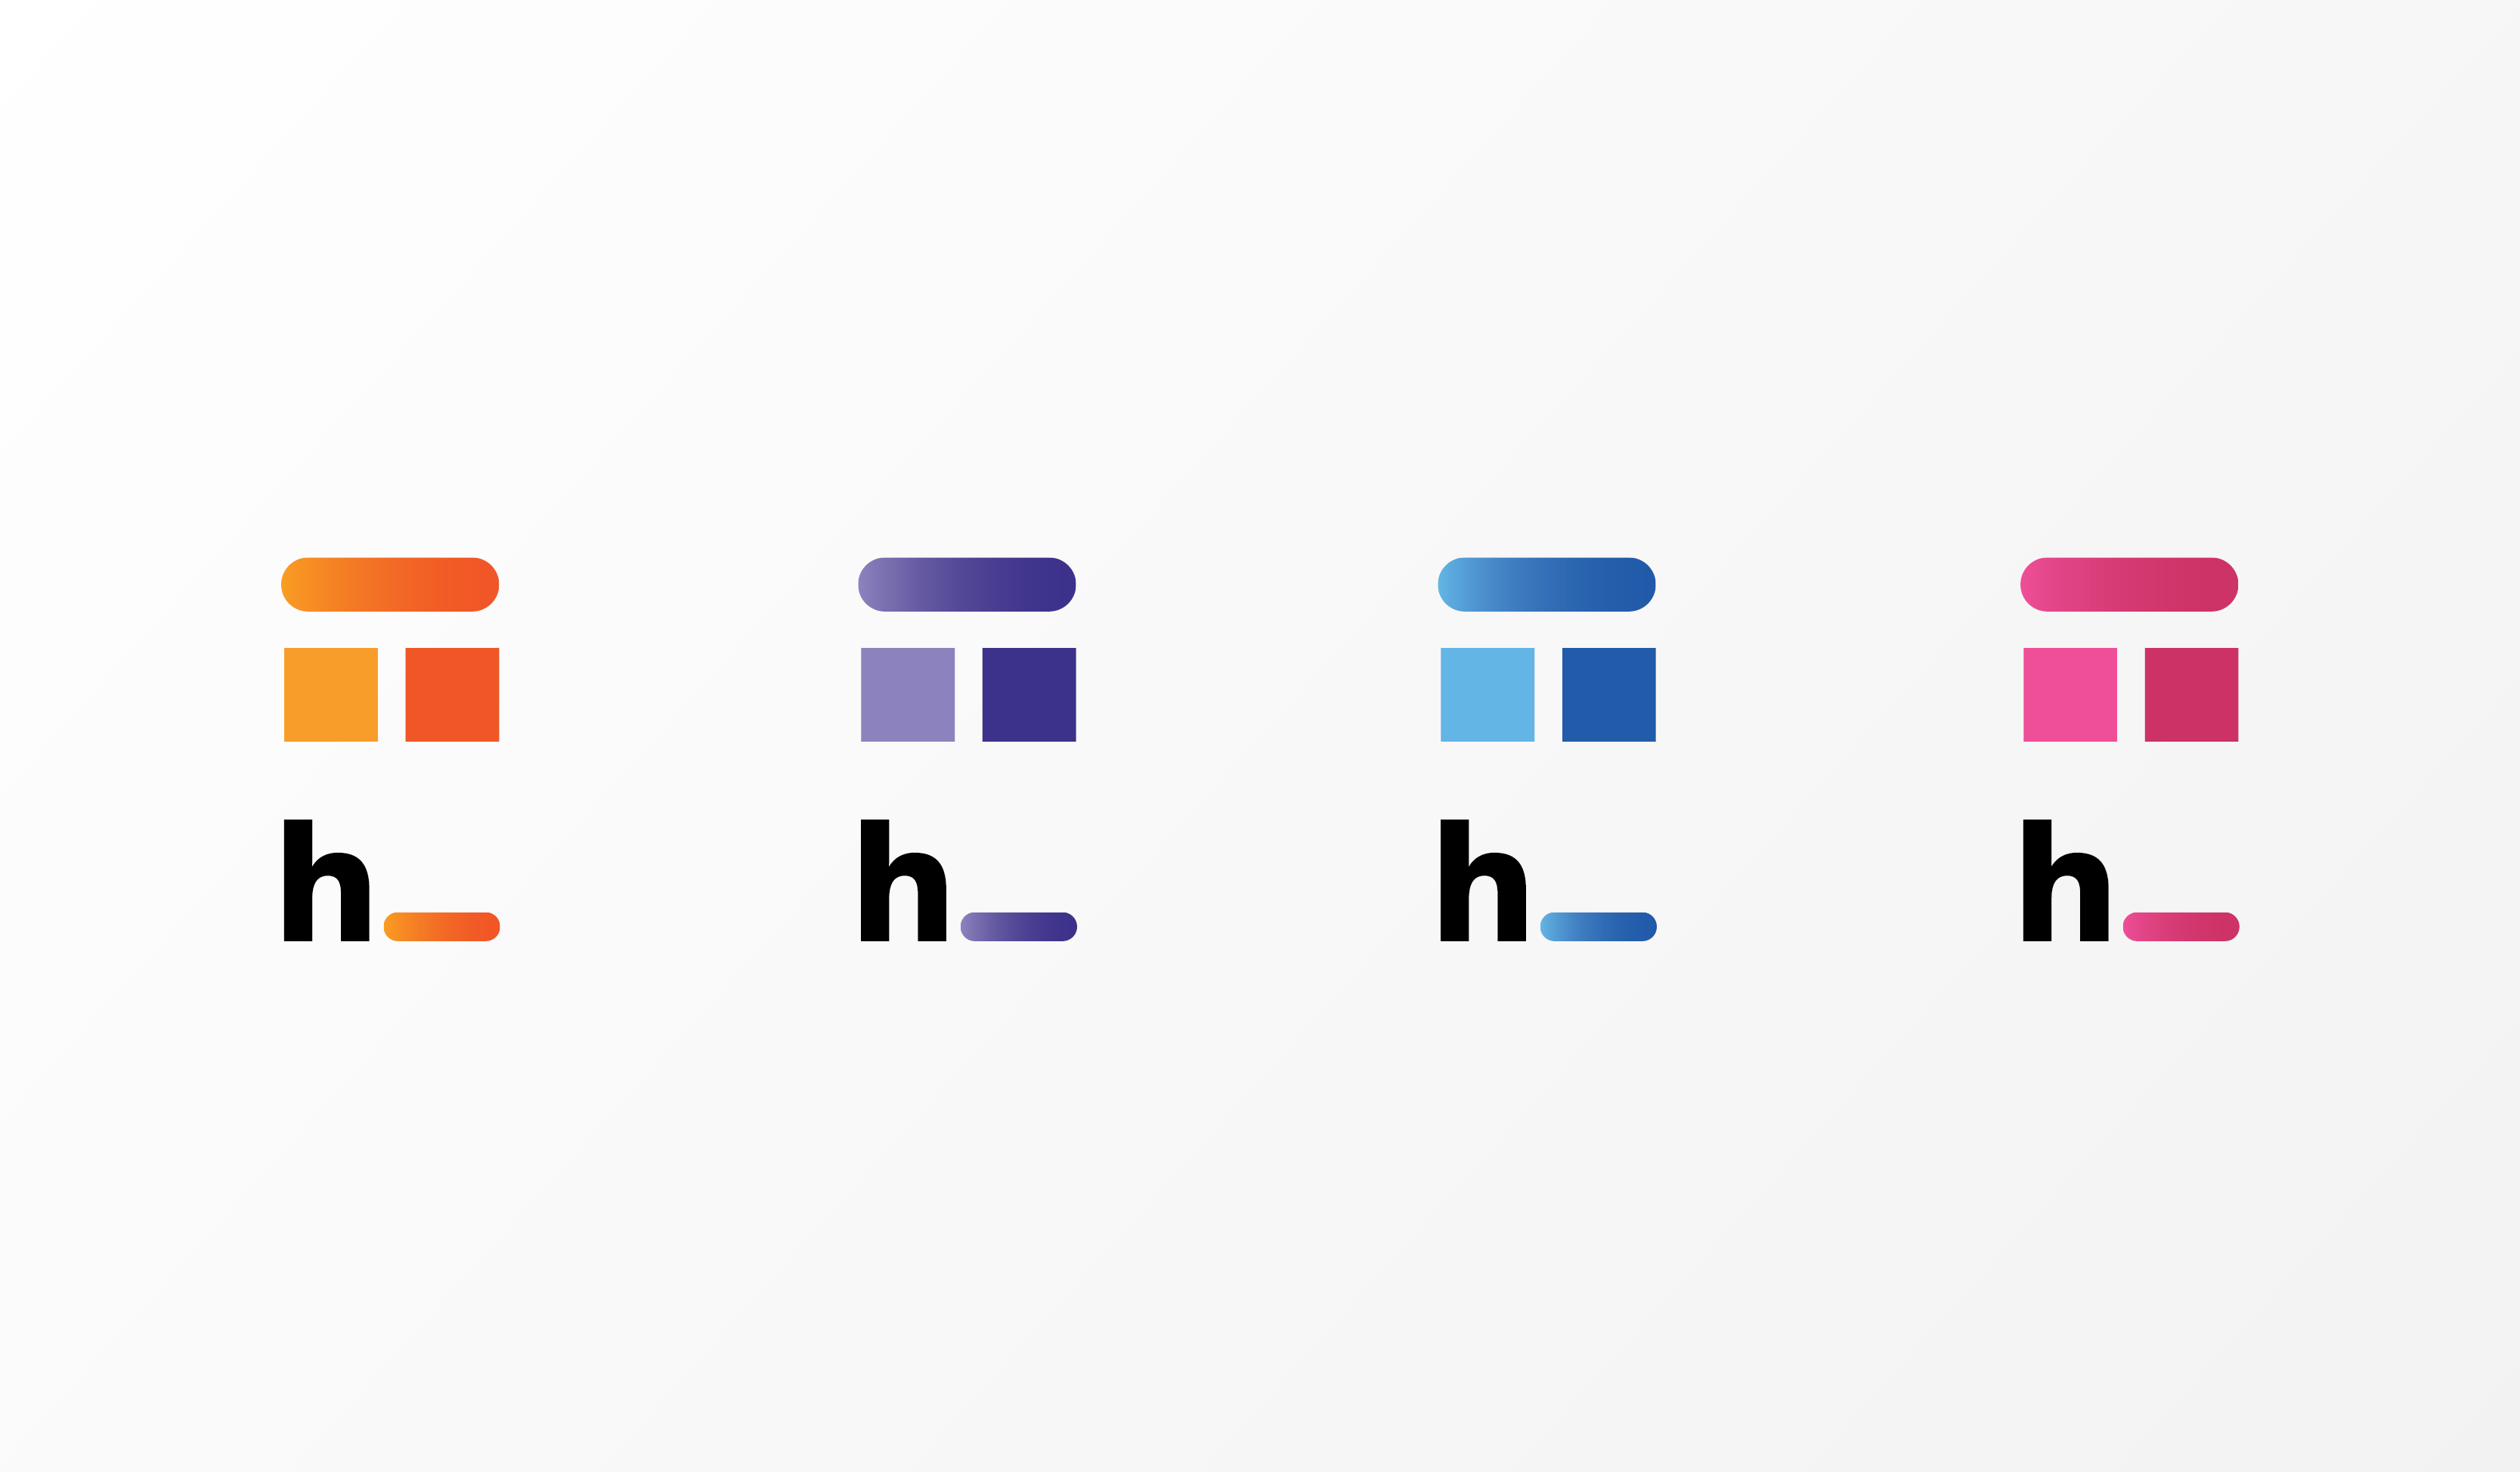 colour palettes showing the Human Space shortened logo (h_) in shades of orange, purple, blue, and pink